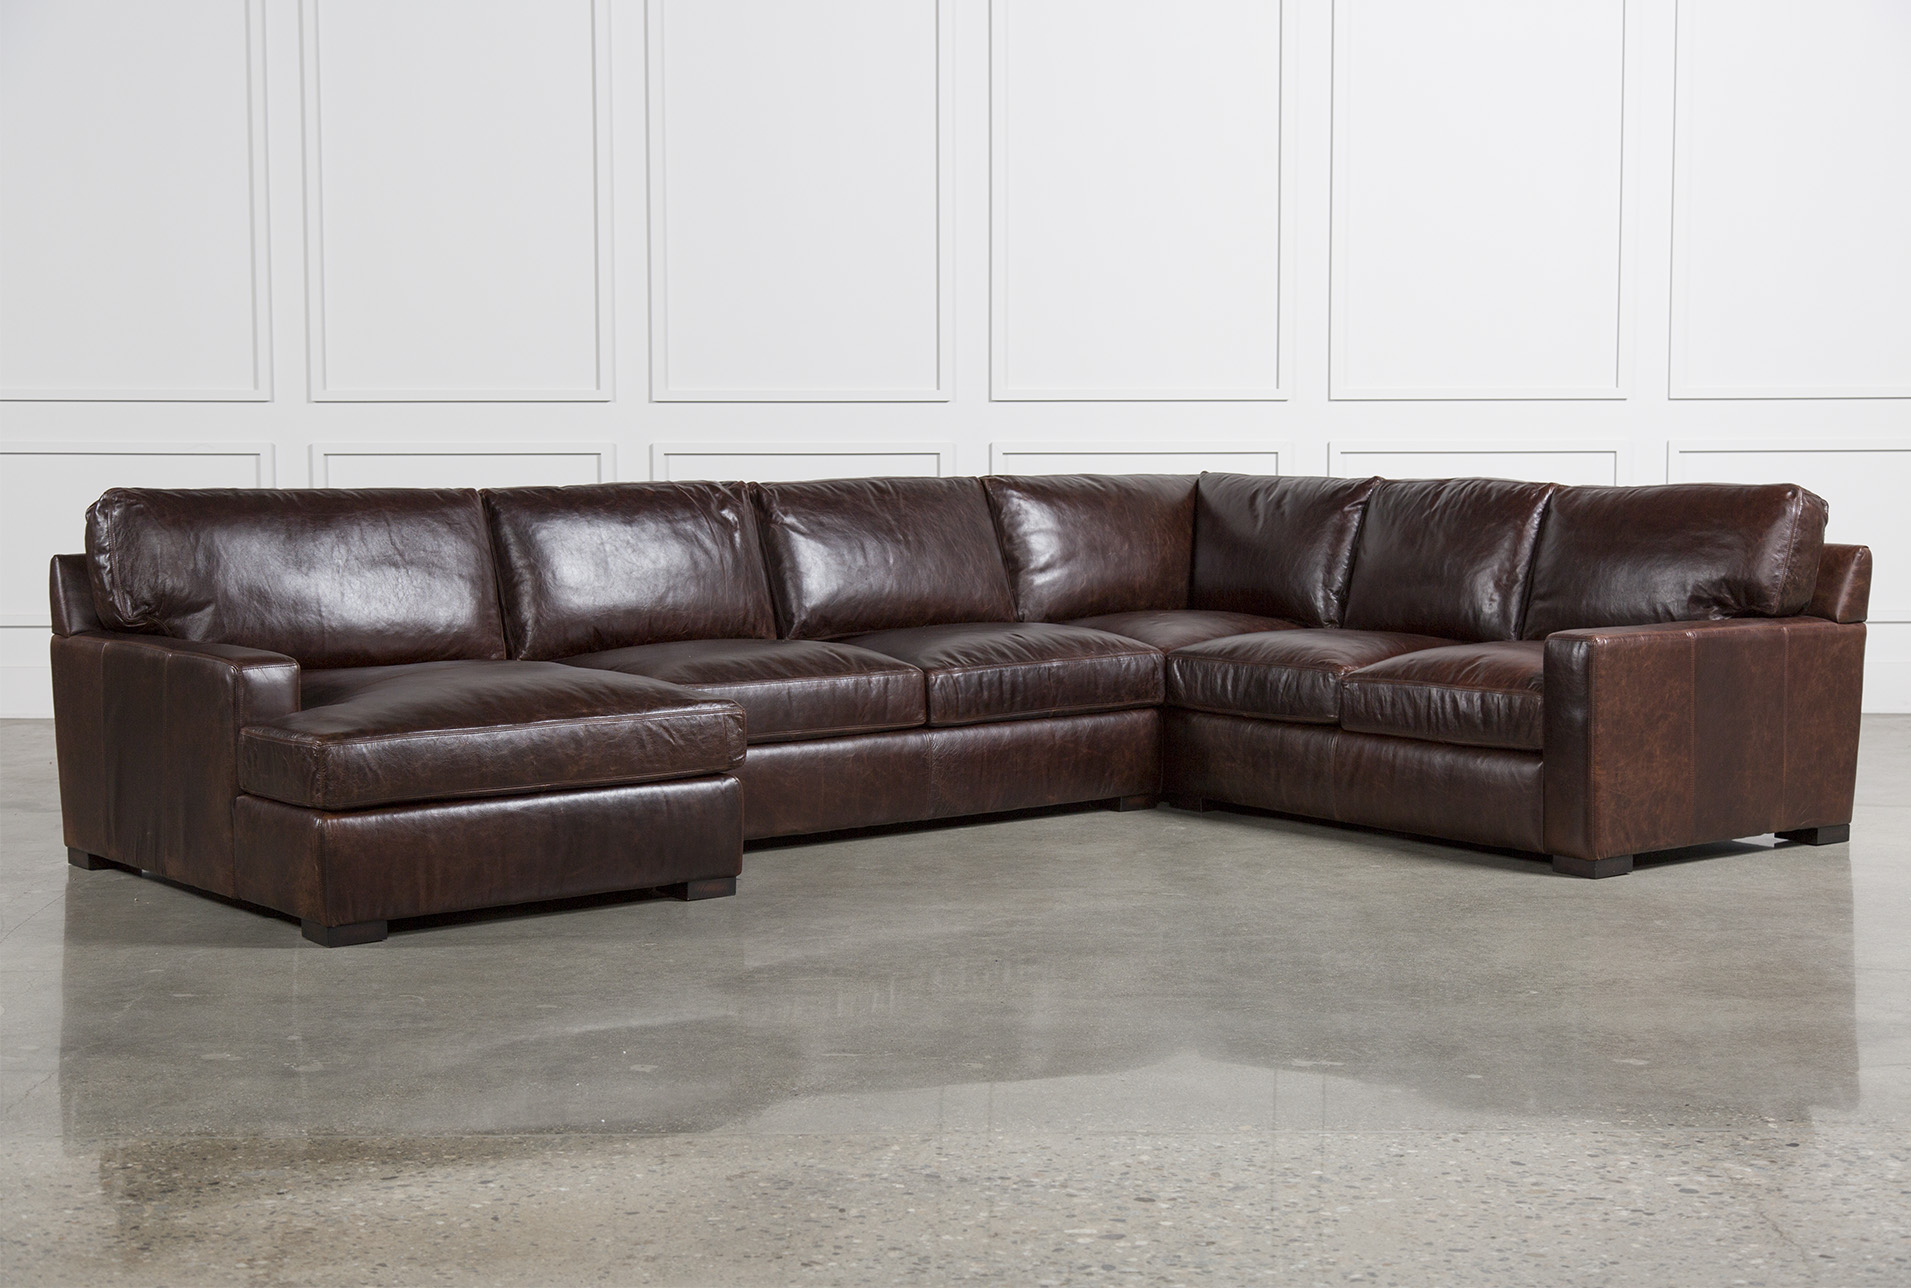 Leather Couches Sectional